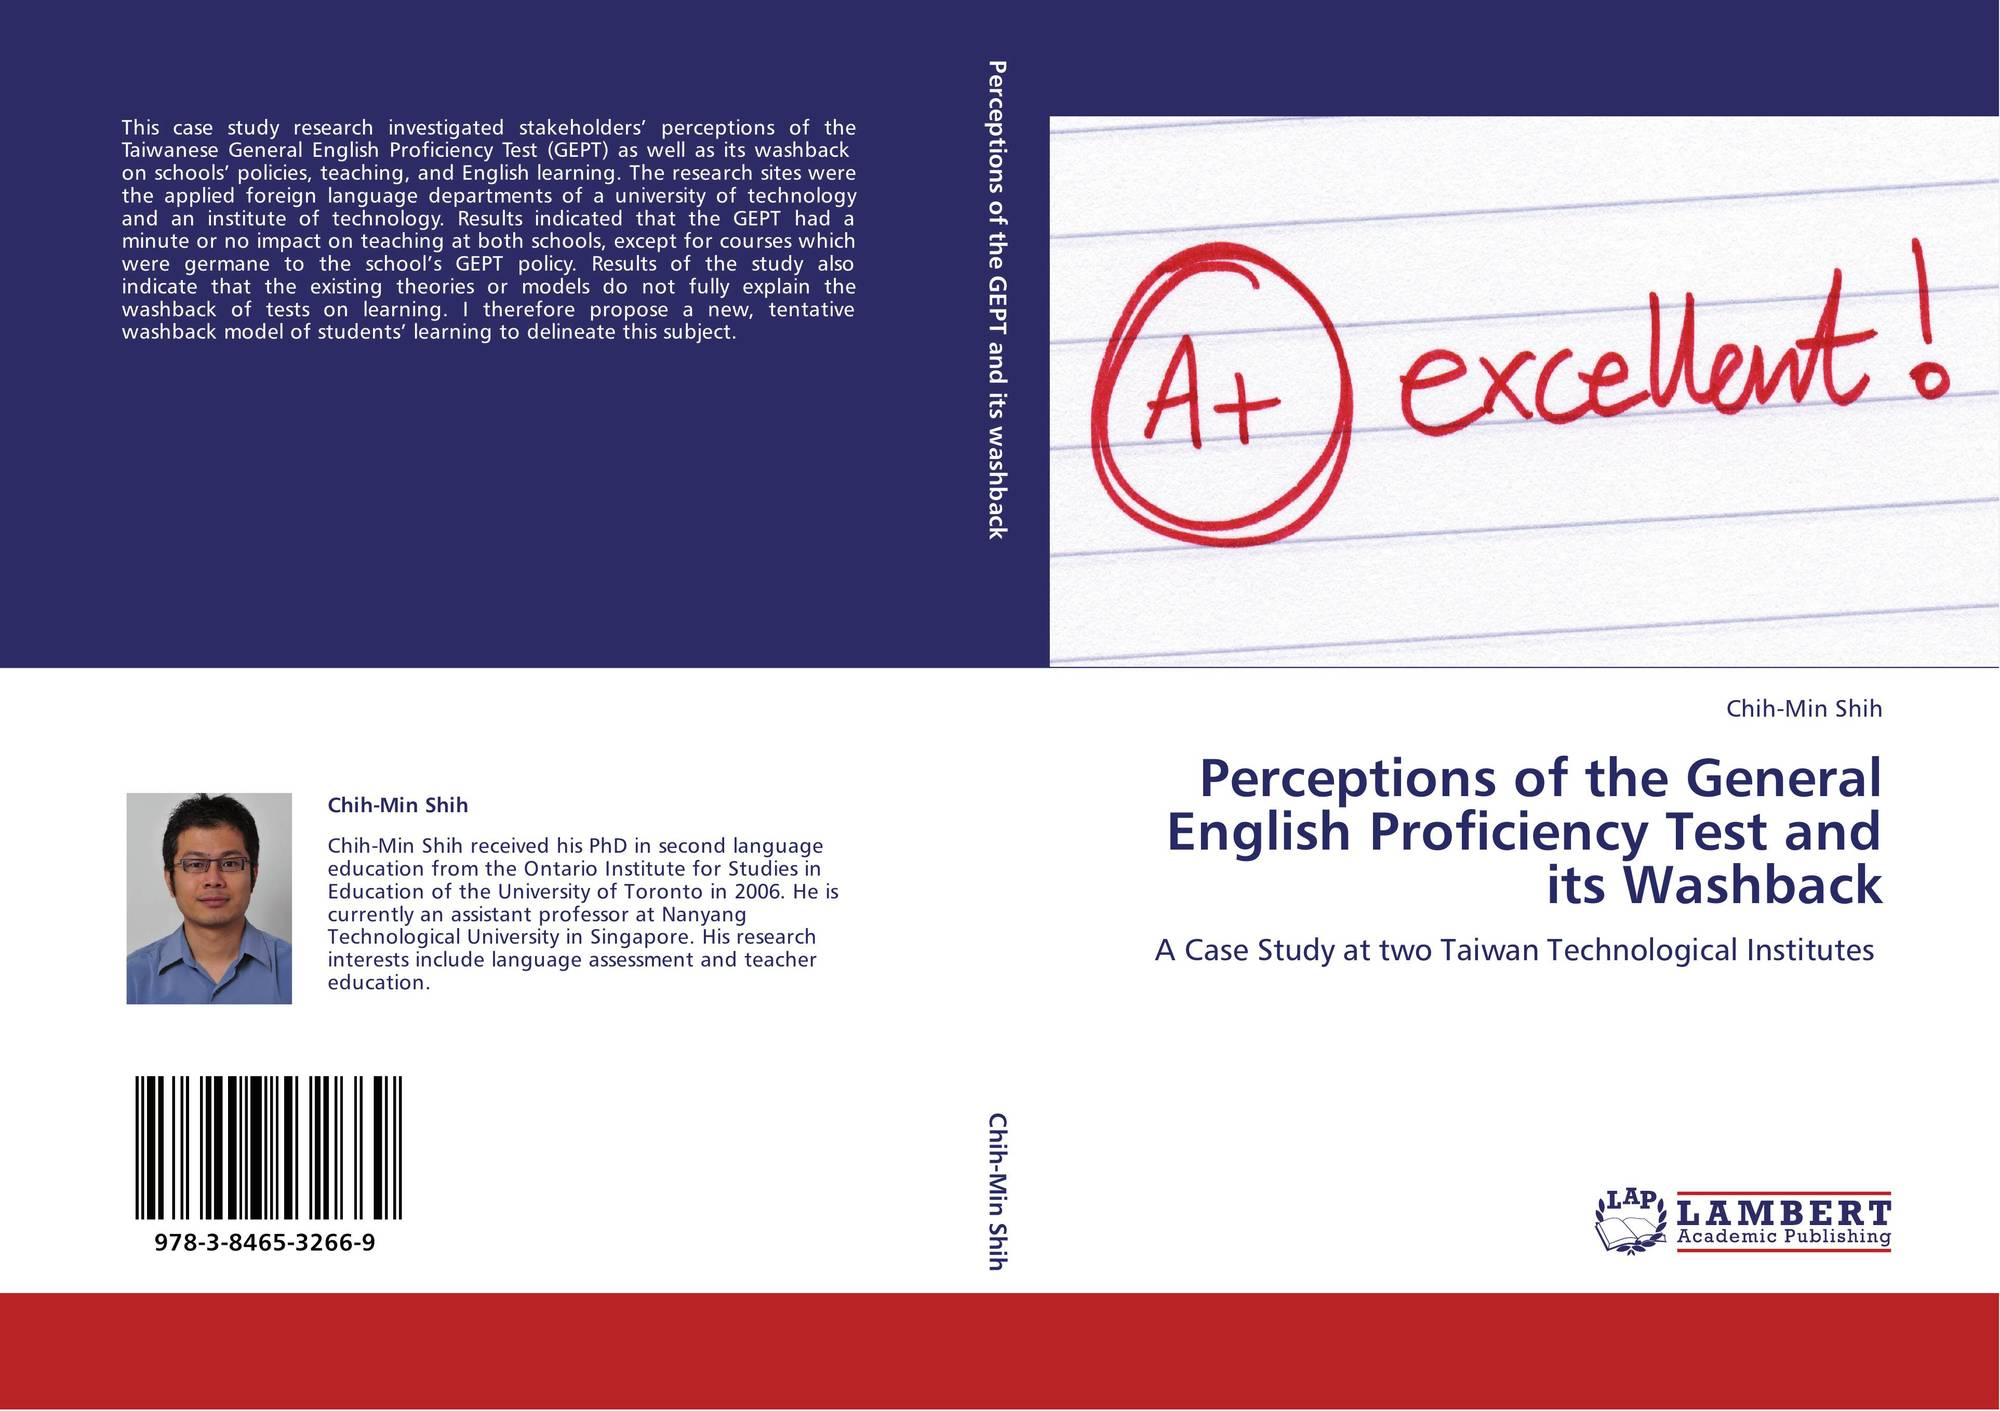 Perceptions of the General English Proficiency Test and its Washback